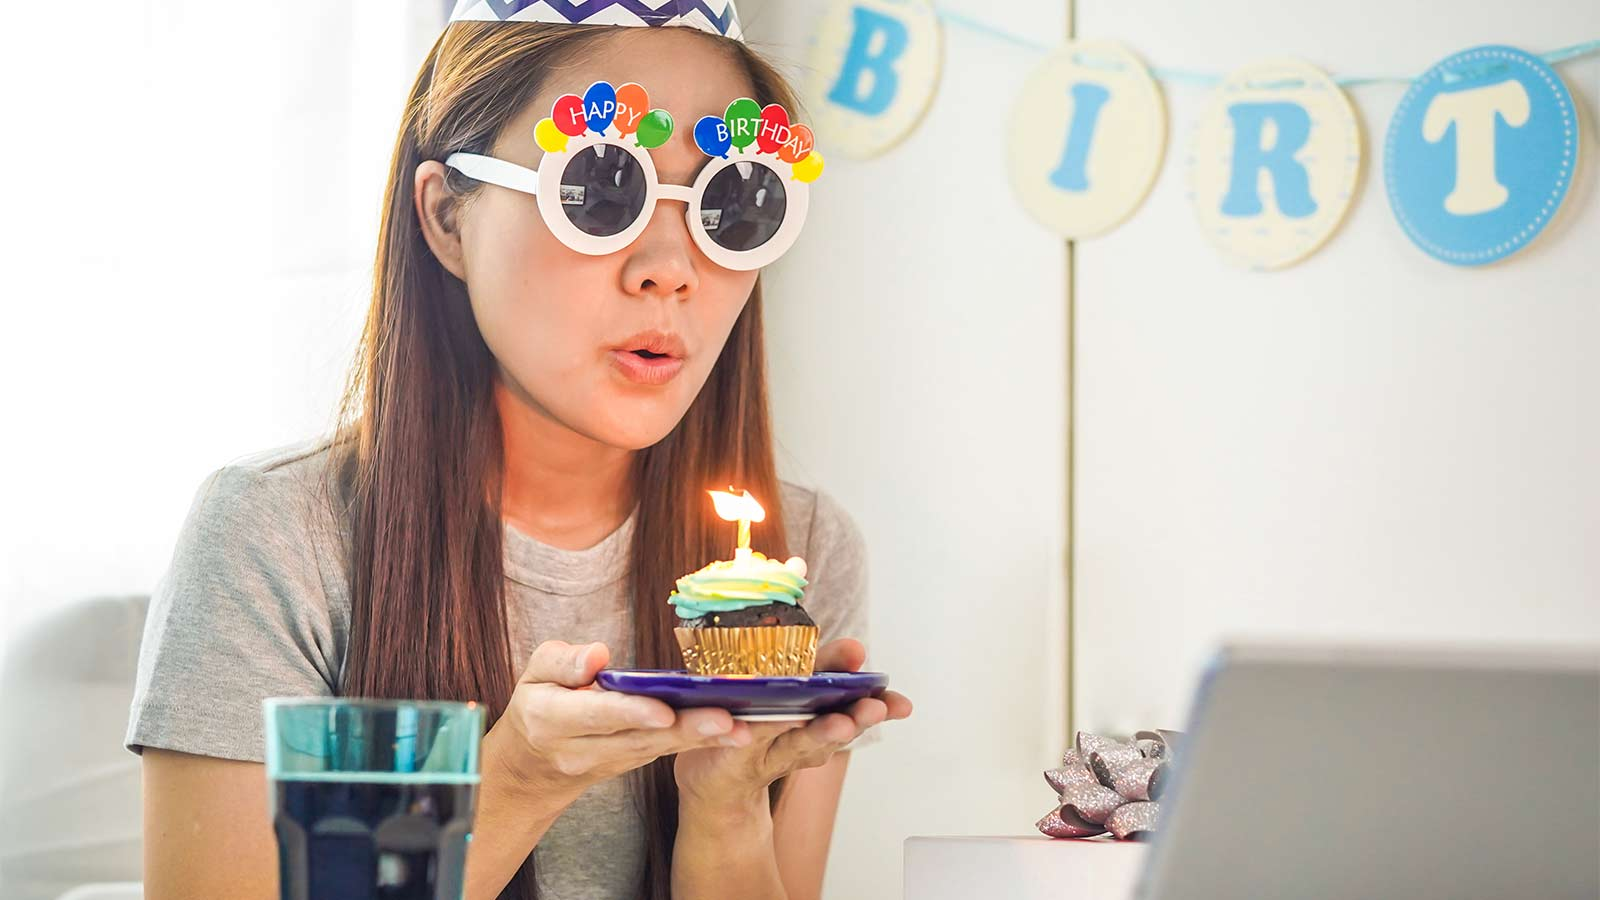 Woman blowing a candle in a cupcake